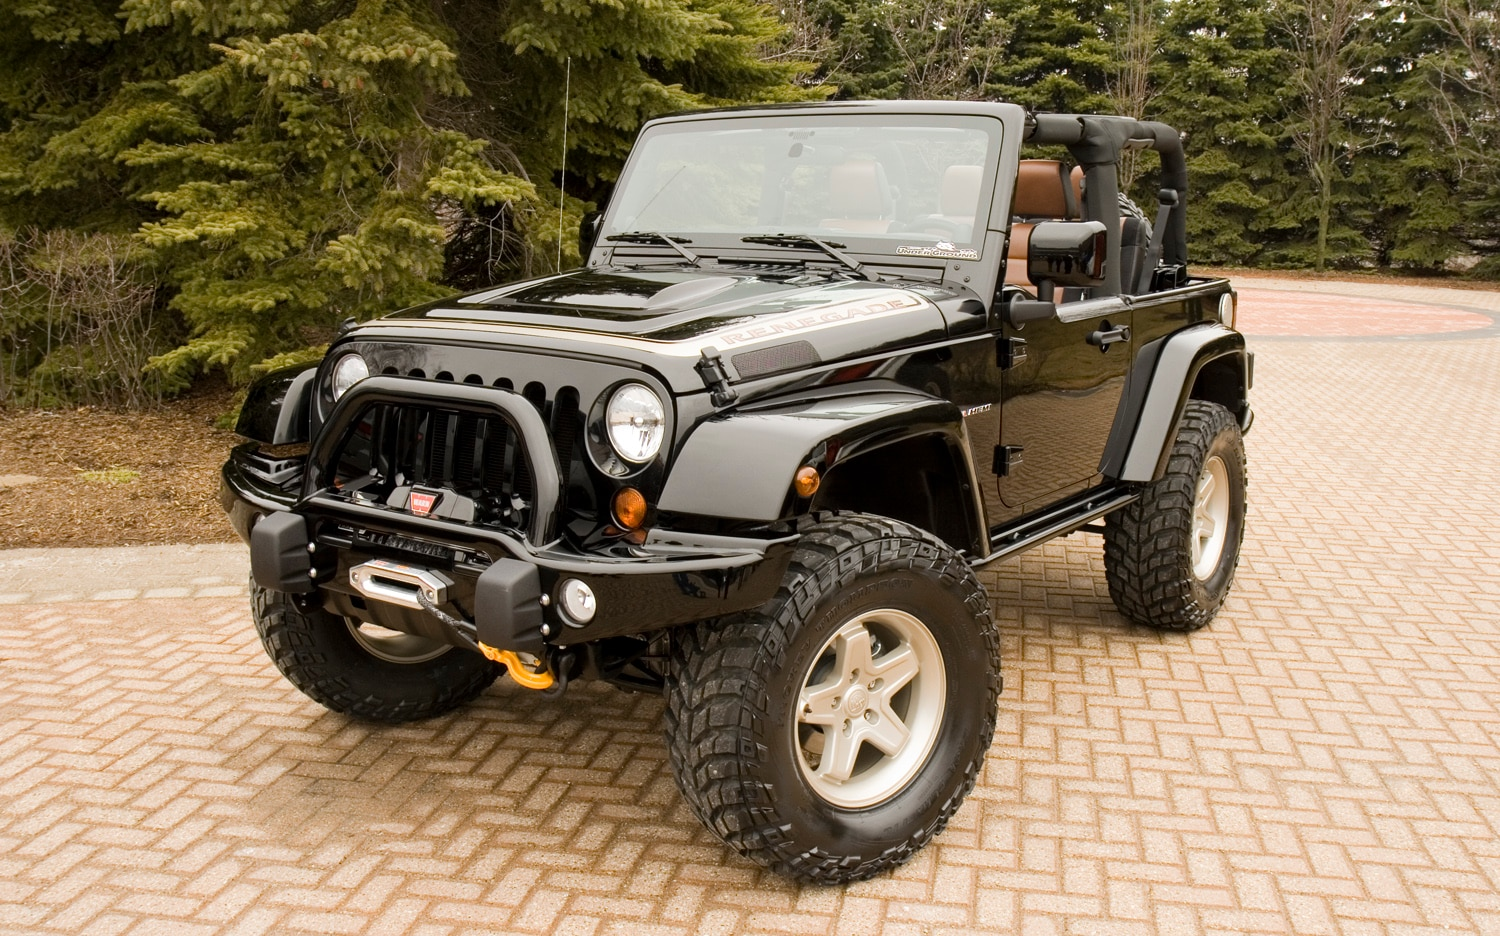 mopar 39 s moab road show new jeep ram concepts heading to easter jeep safari. Black Bedroom Furniture Sets. Home Design Ideas